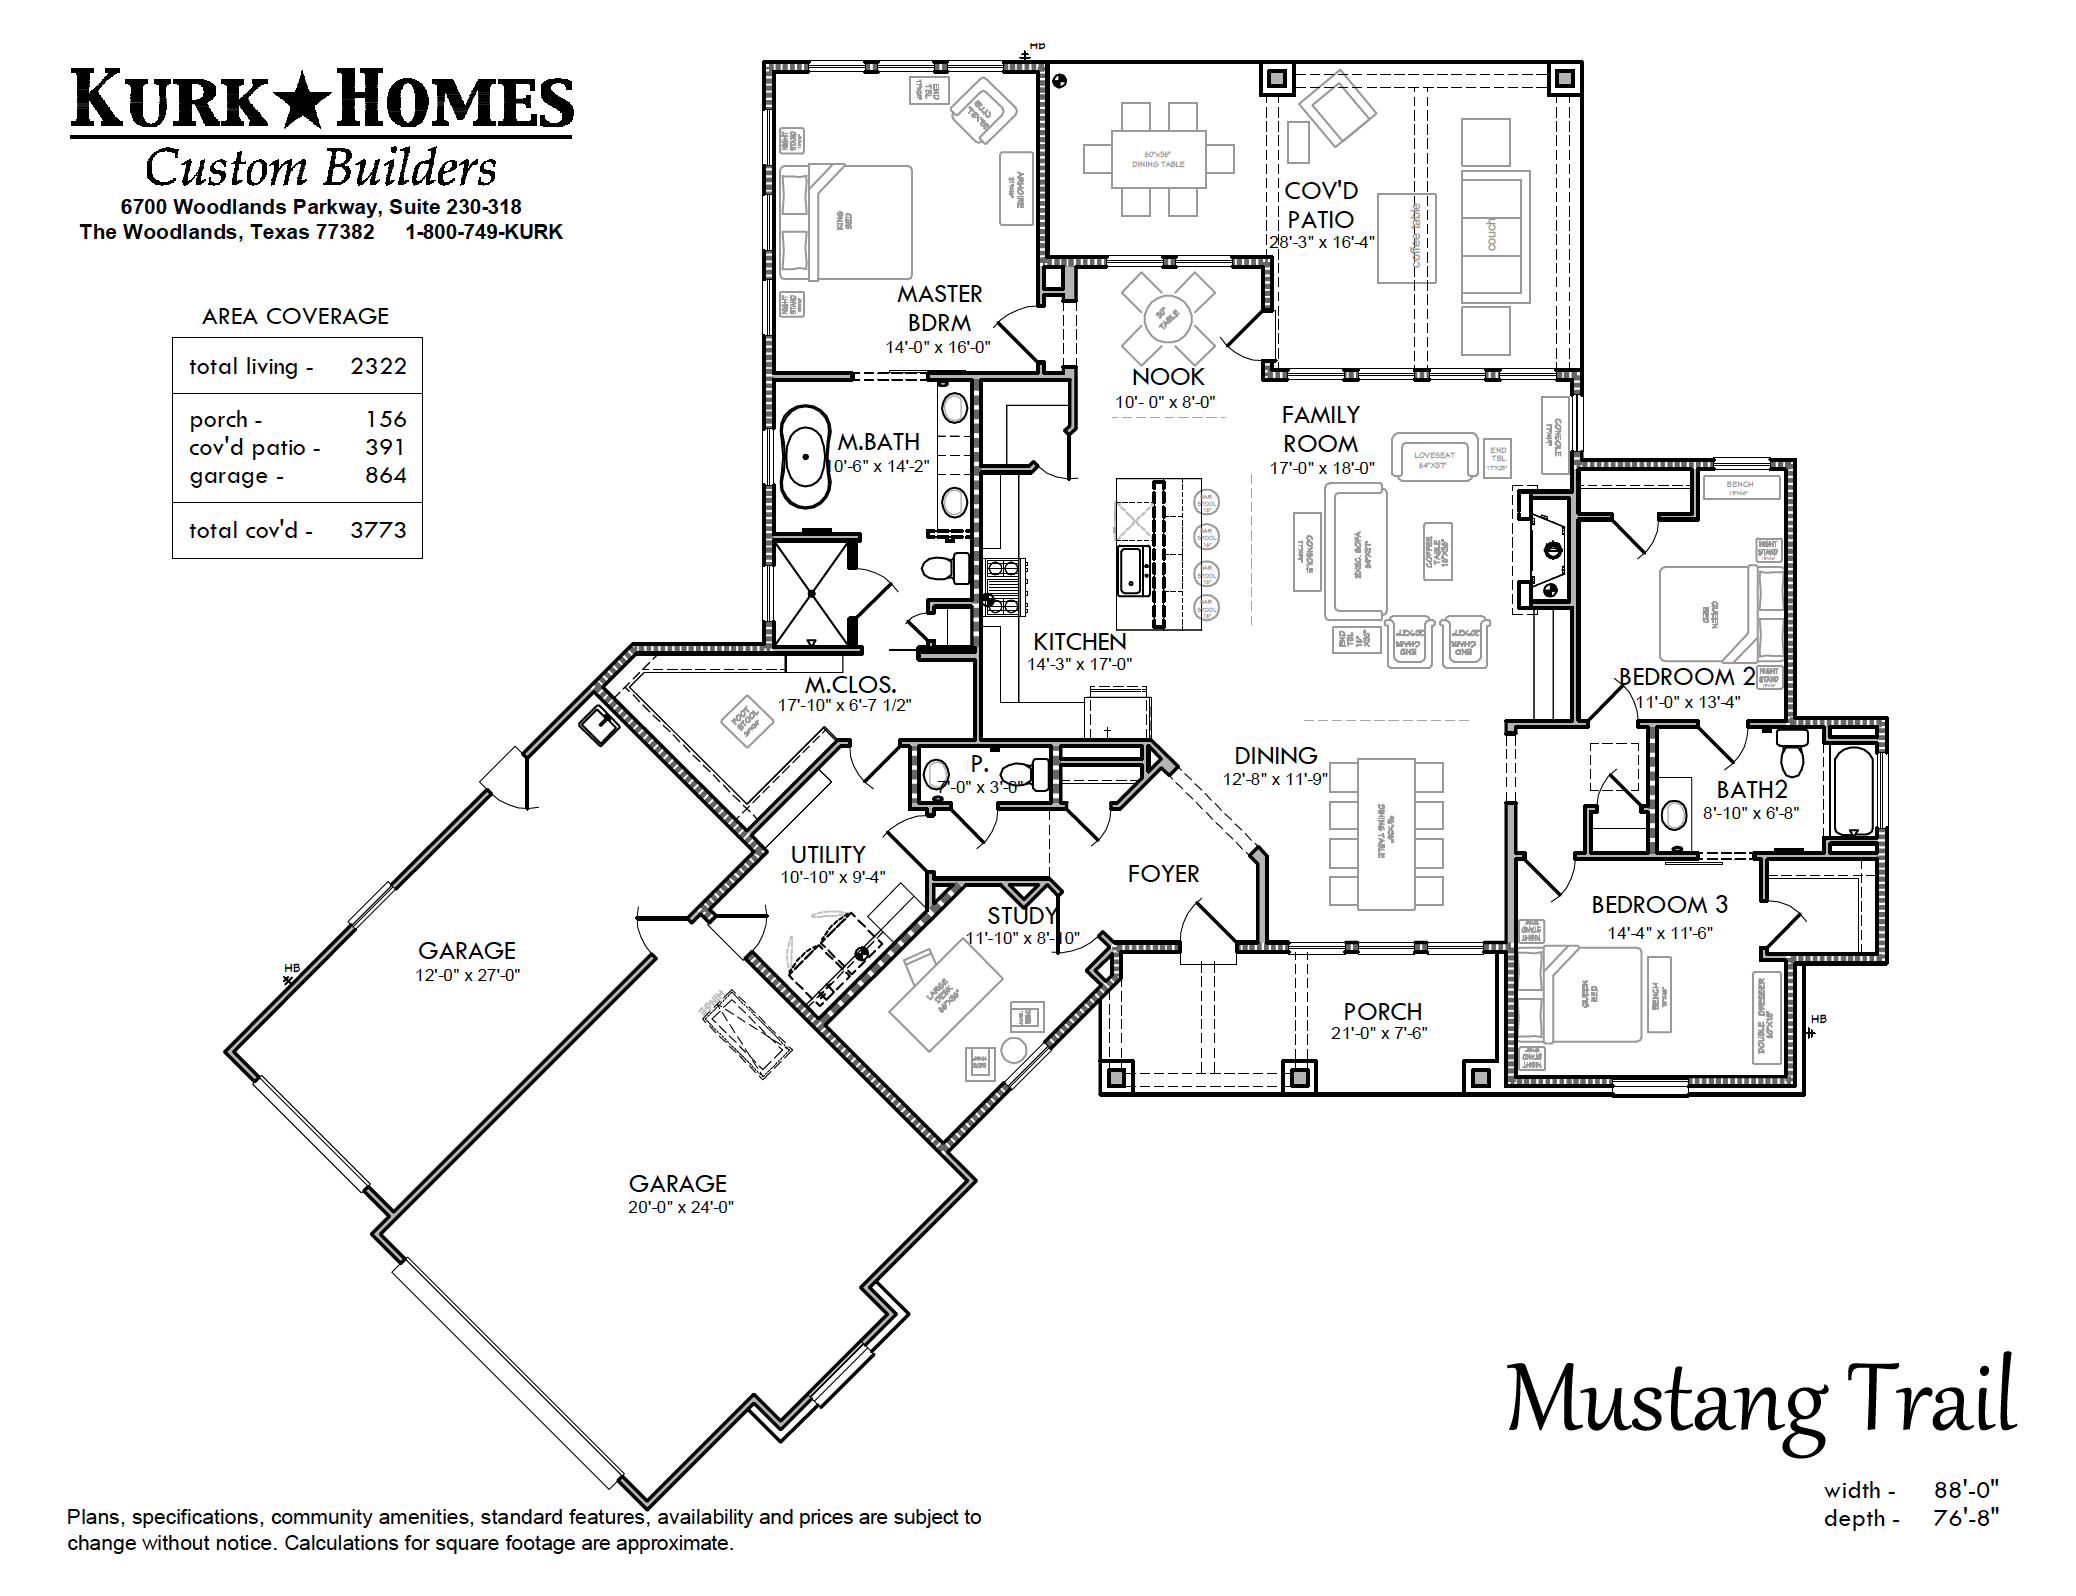 Kurk Homes Custom Builders - Mustang Trail